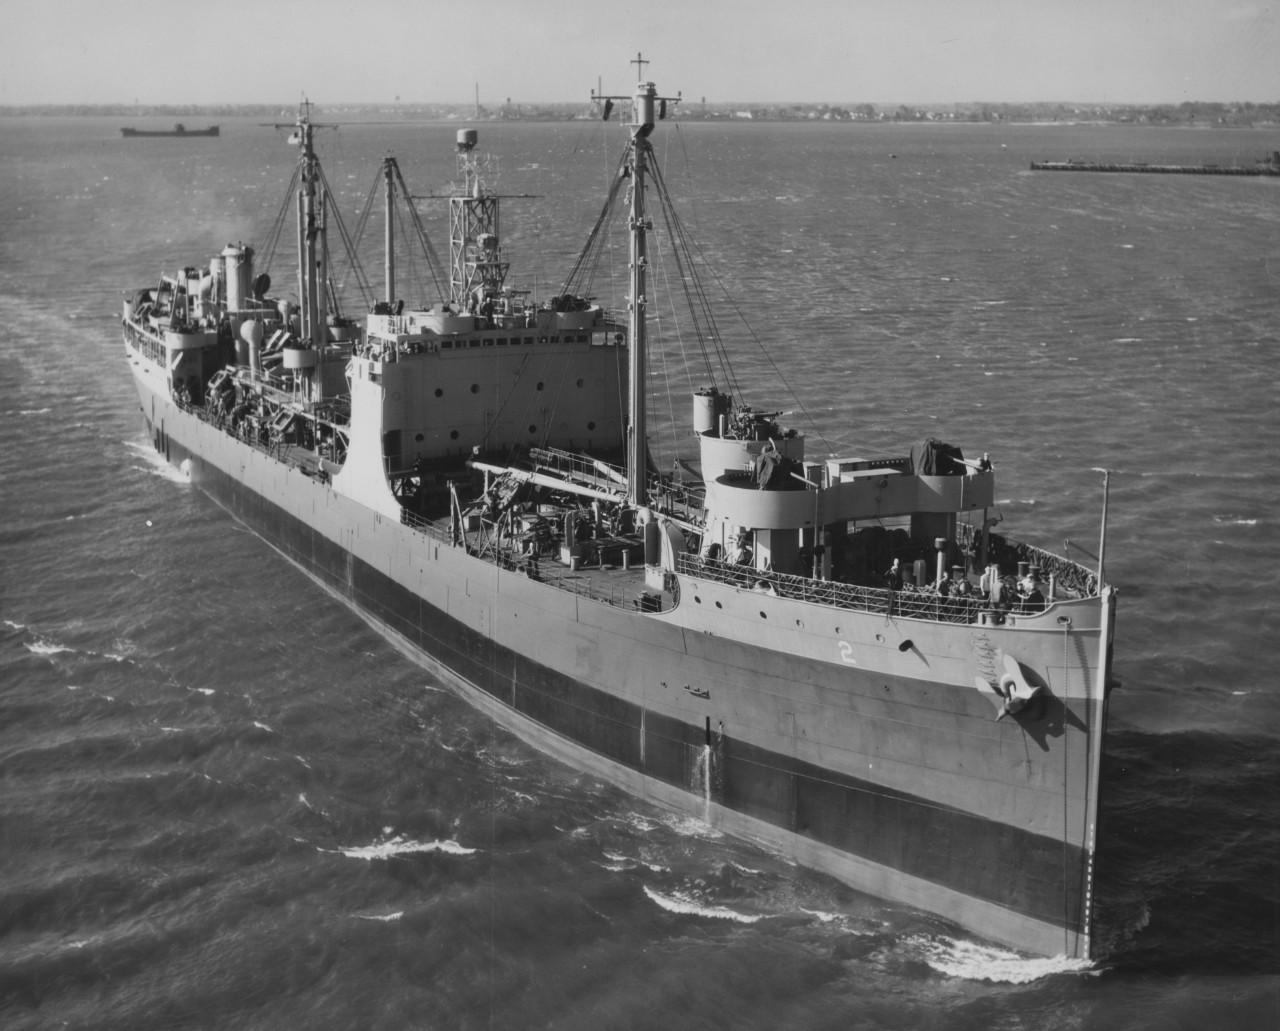 Riding high in the water following her refit at Norfolk Navy Yard, Maumee in Hampton Roads, 31 March 1945. (U.S. Navy Bureau of Ships Photograph, 19-LCM Collection, Box 93, National Archives and Records Administration, Still Pictures Branch, College Park, Md.)